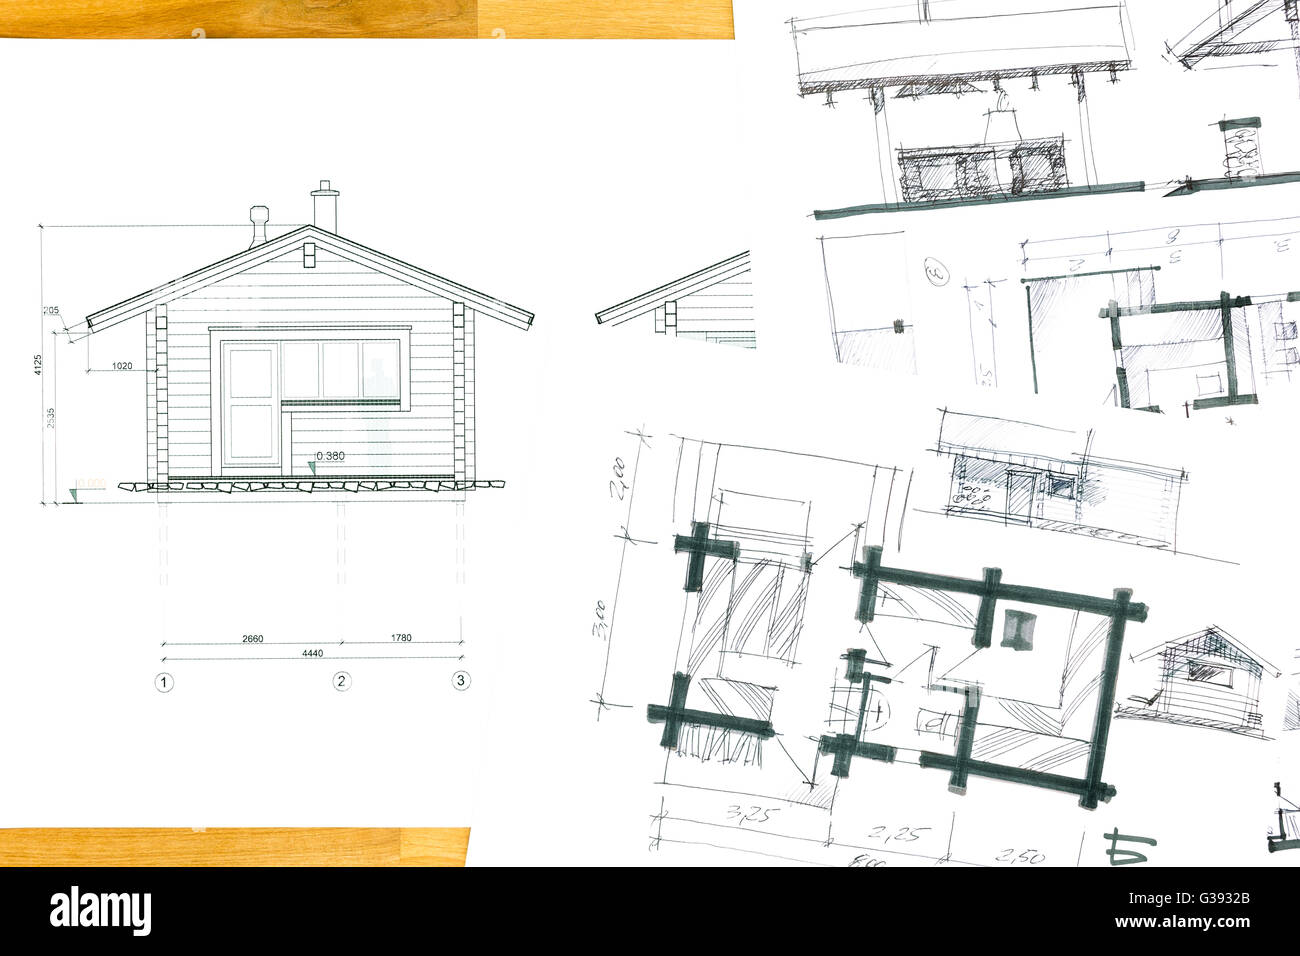 Architectural sketch drawings and blueprints for home renovation architectural sketch drawings and blueprints for home renovation malvernweather Choice Image